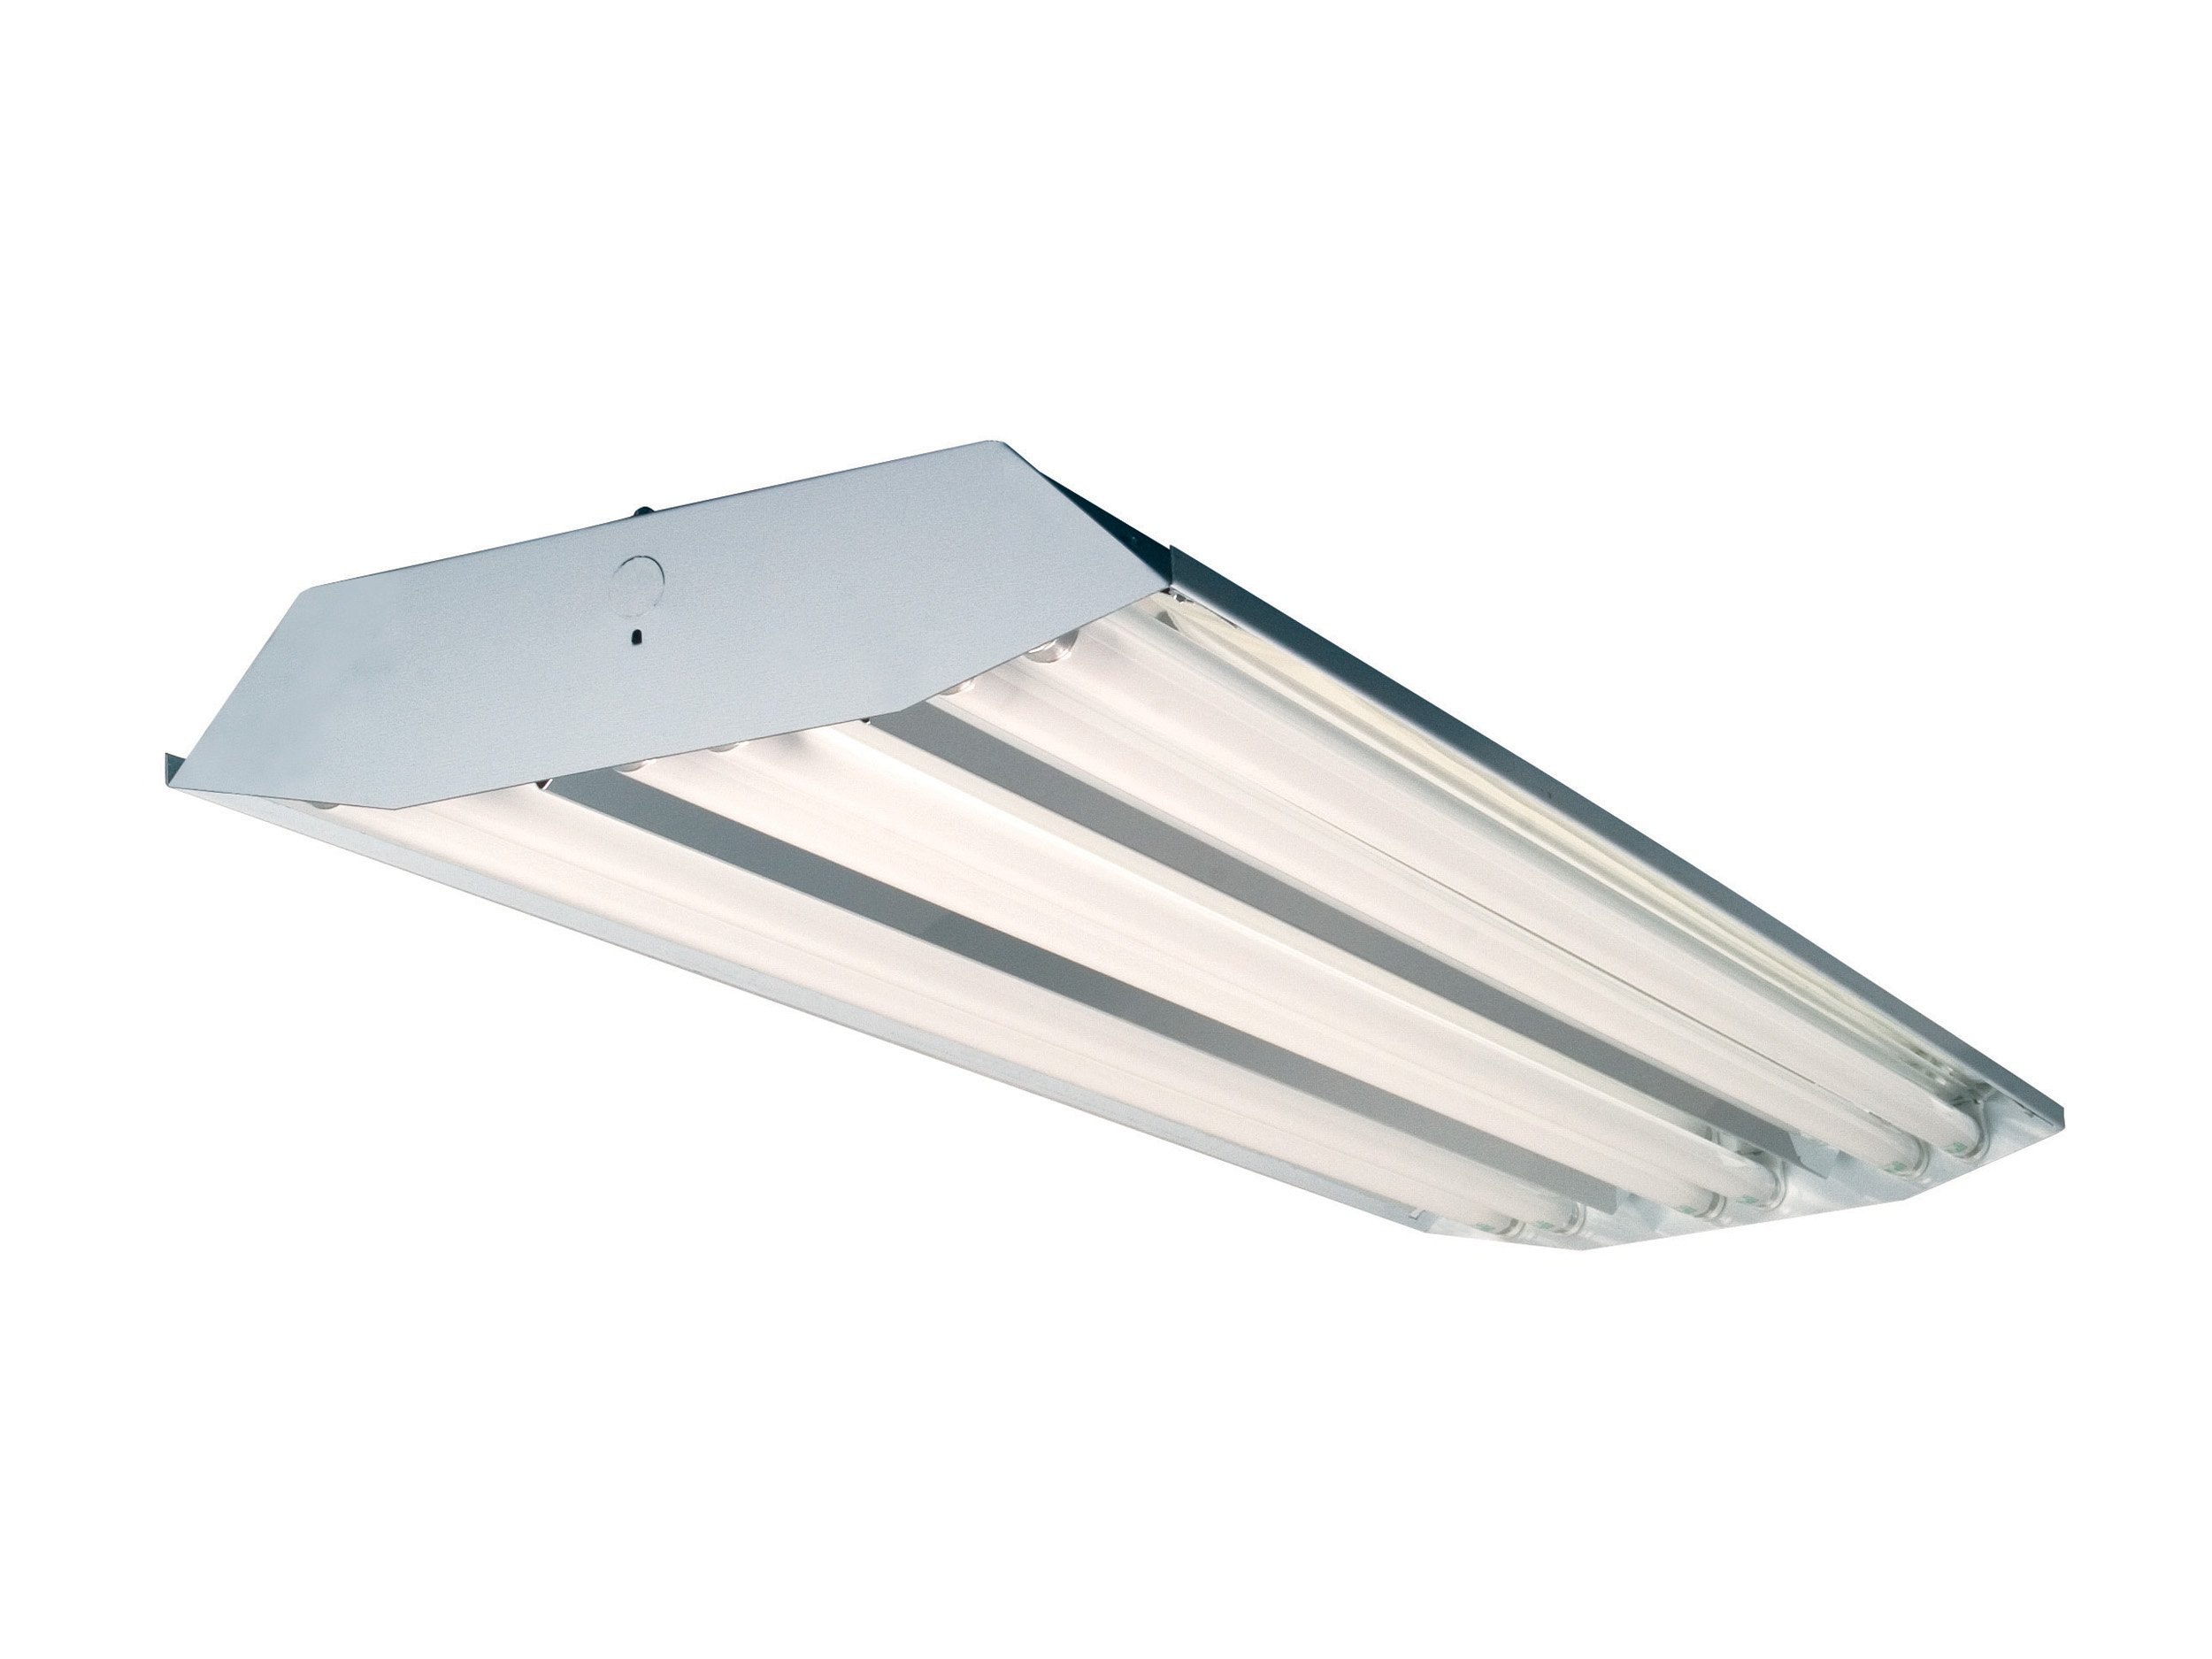 Howard Lighting HFA3E654PAPSMV000  6 Lamp High Bay Fluorescent  Standard Specular Aluminum Reflector